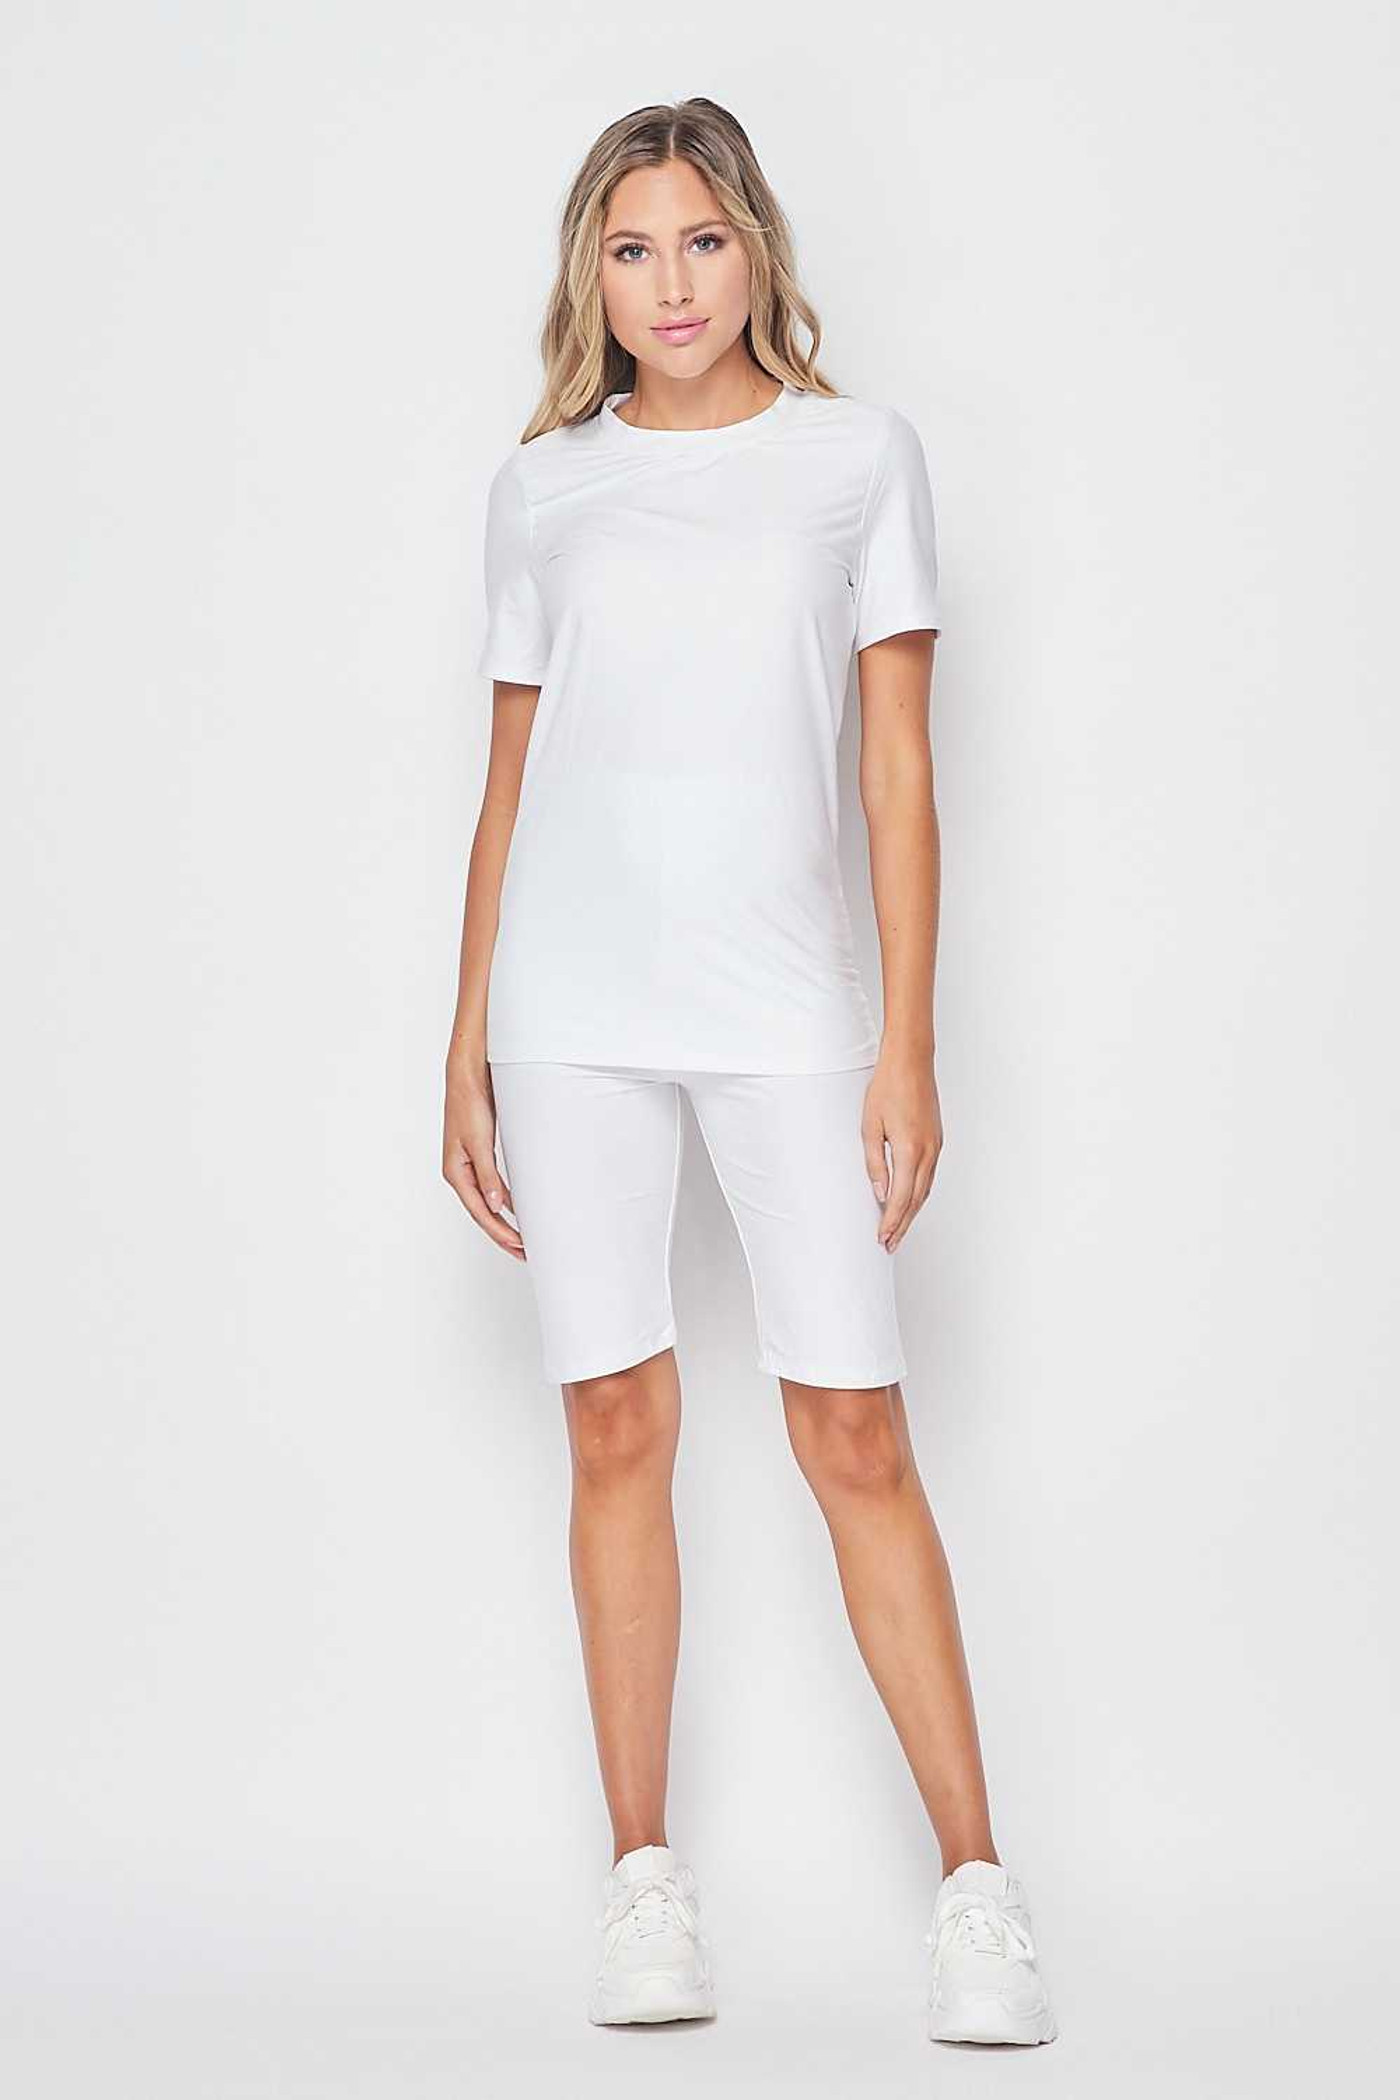 Front of White Double Brushed Basic Solid Biker Shorts and T-Shirt Set